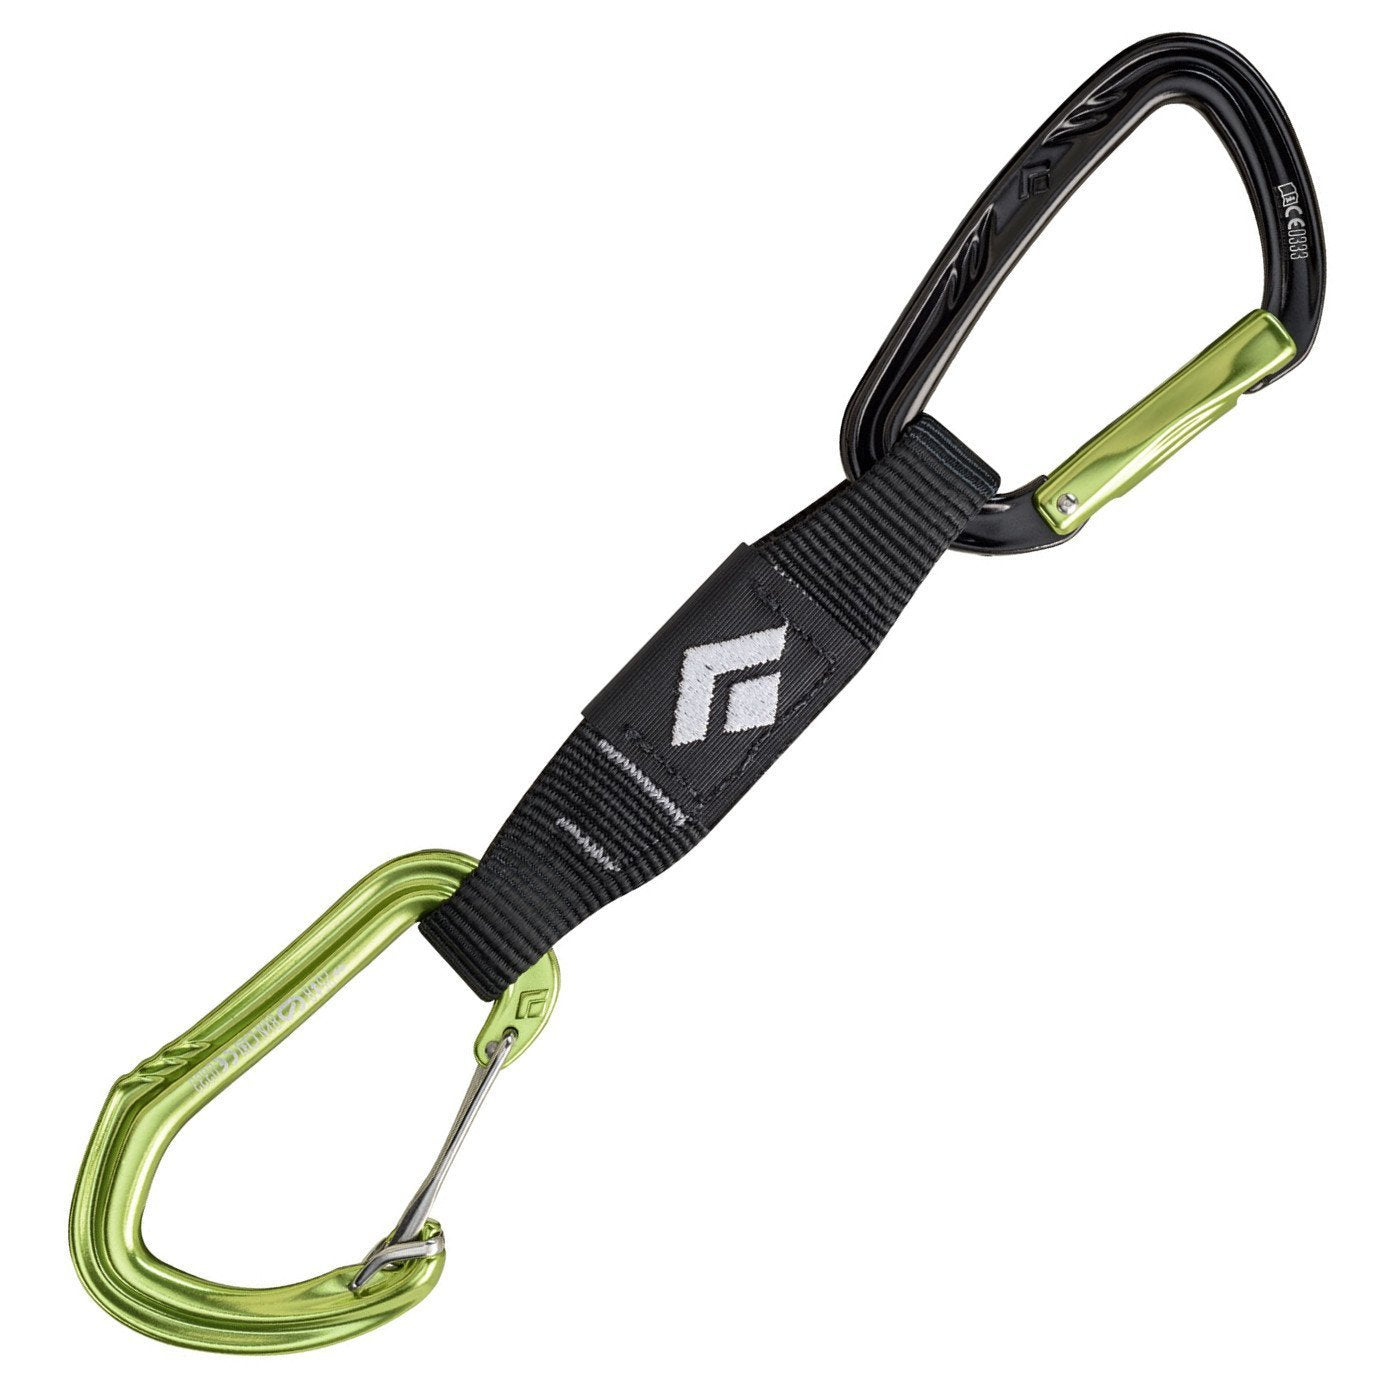 Black Diamond LiveWire Quickdraw, with black dogbone and black/green coloured carabiners